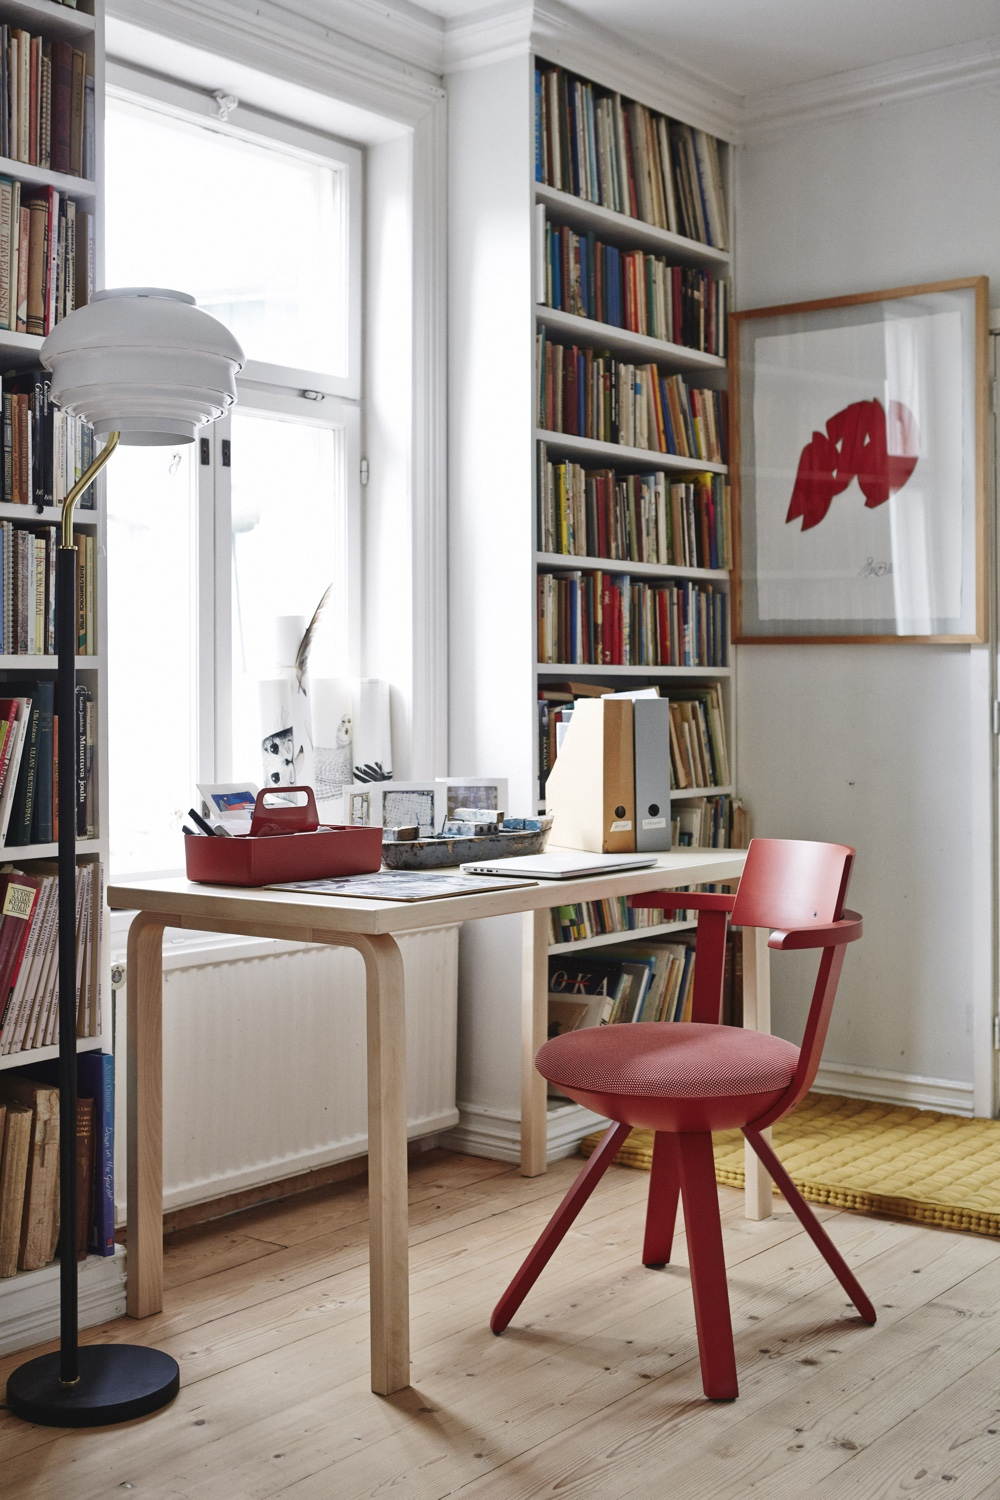 The KC002 Rival Chair (in red) was designed by Konstantin Grcic in 2014. The Vitra Toolbox (in 'brick') was designed by Arik Levy in 2010.